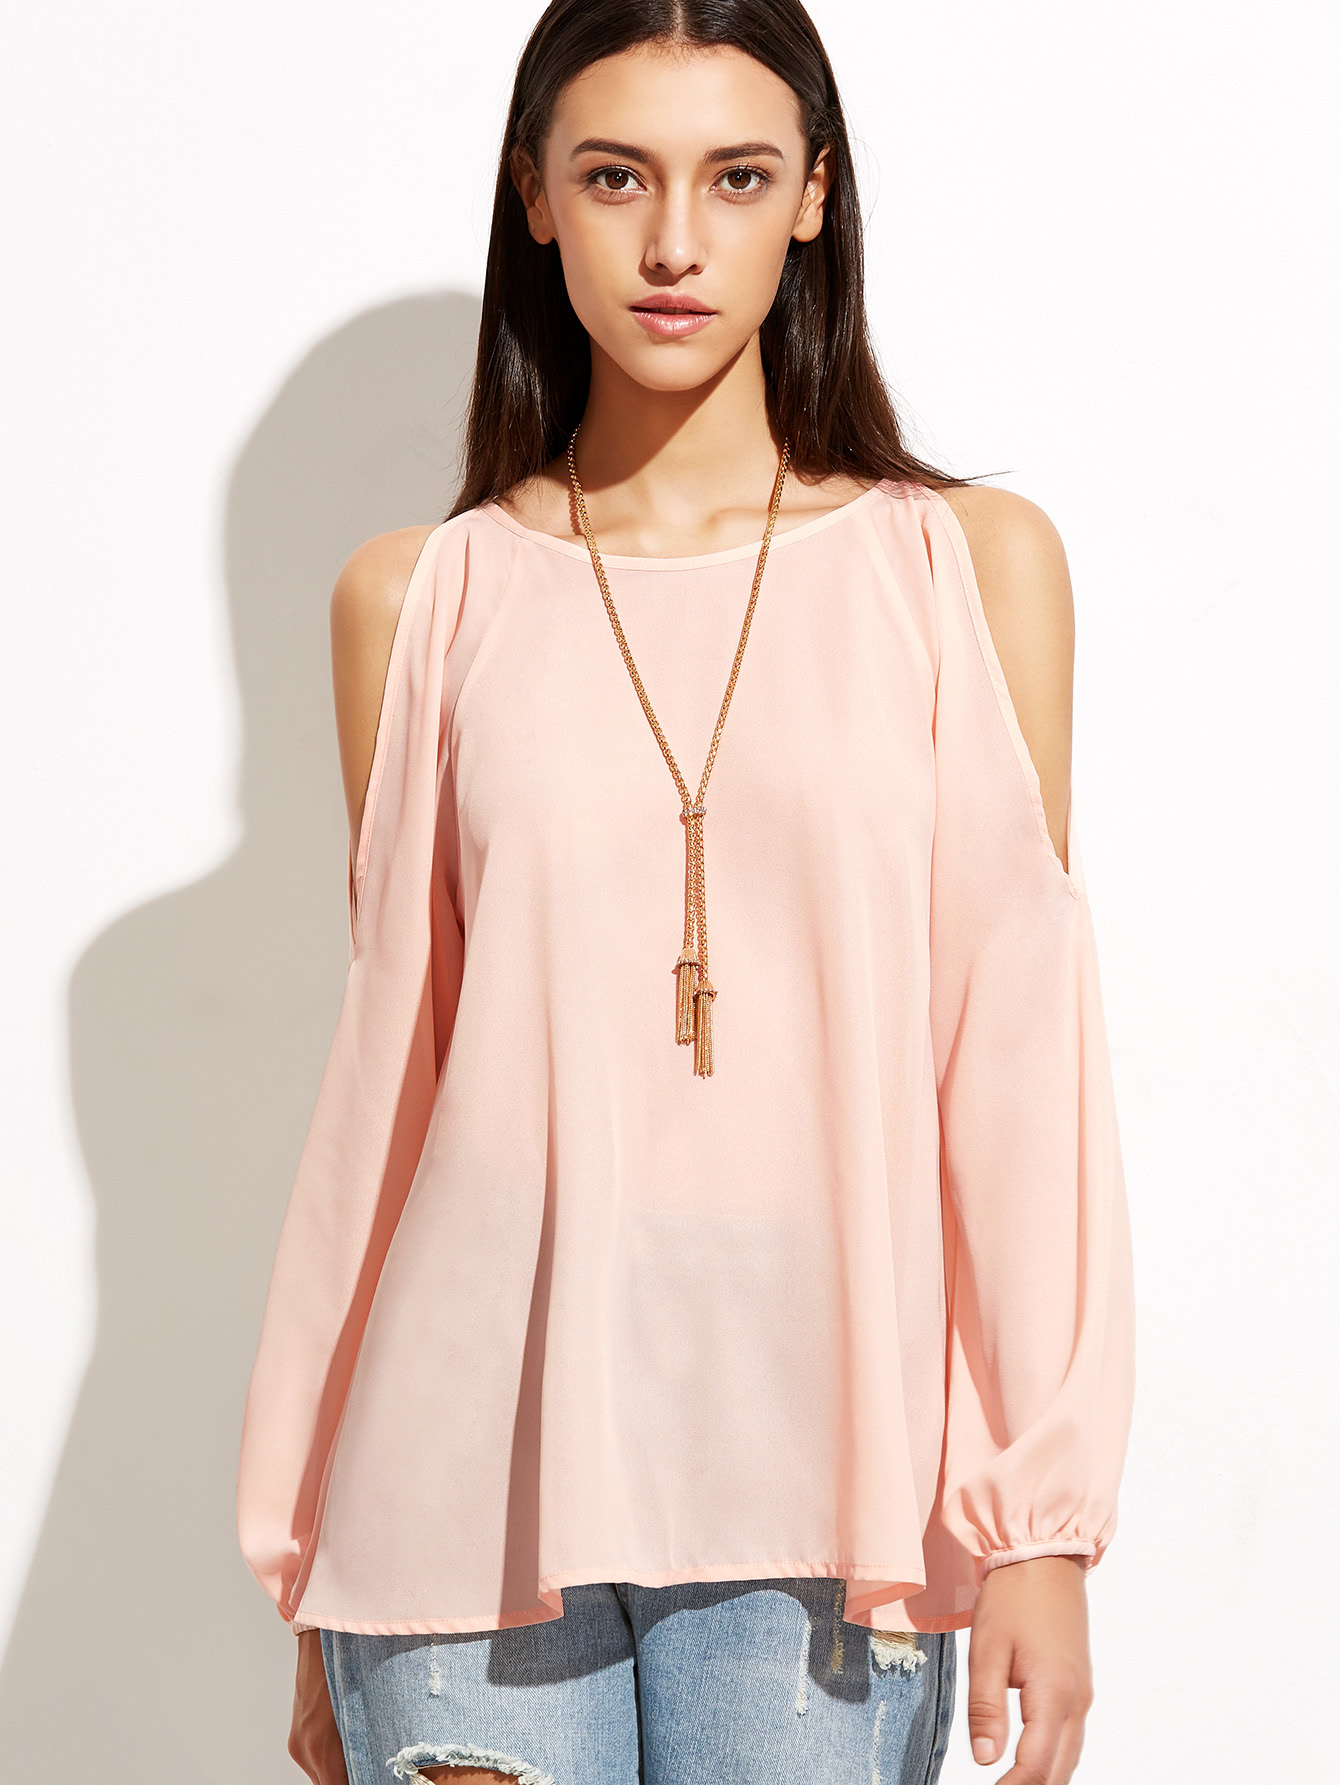 Find great deals on eBay for open shoulder tops. Shop with confidence.